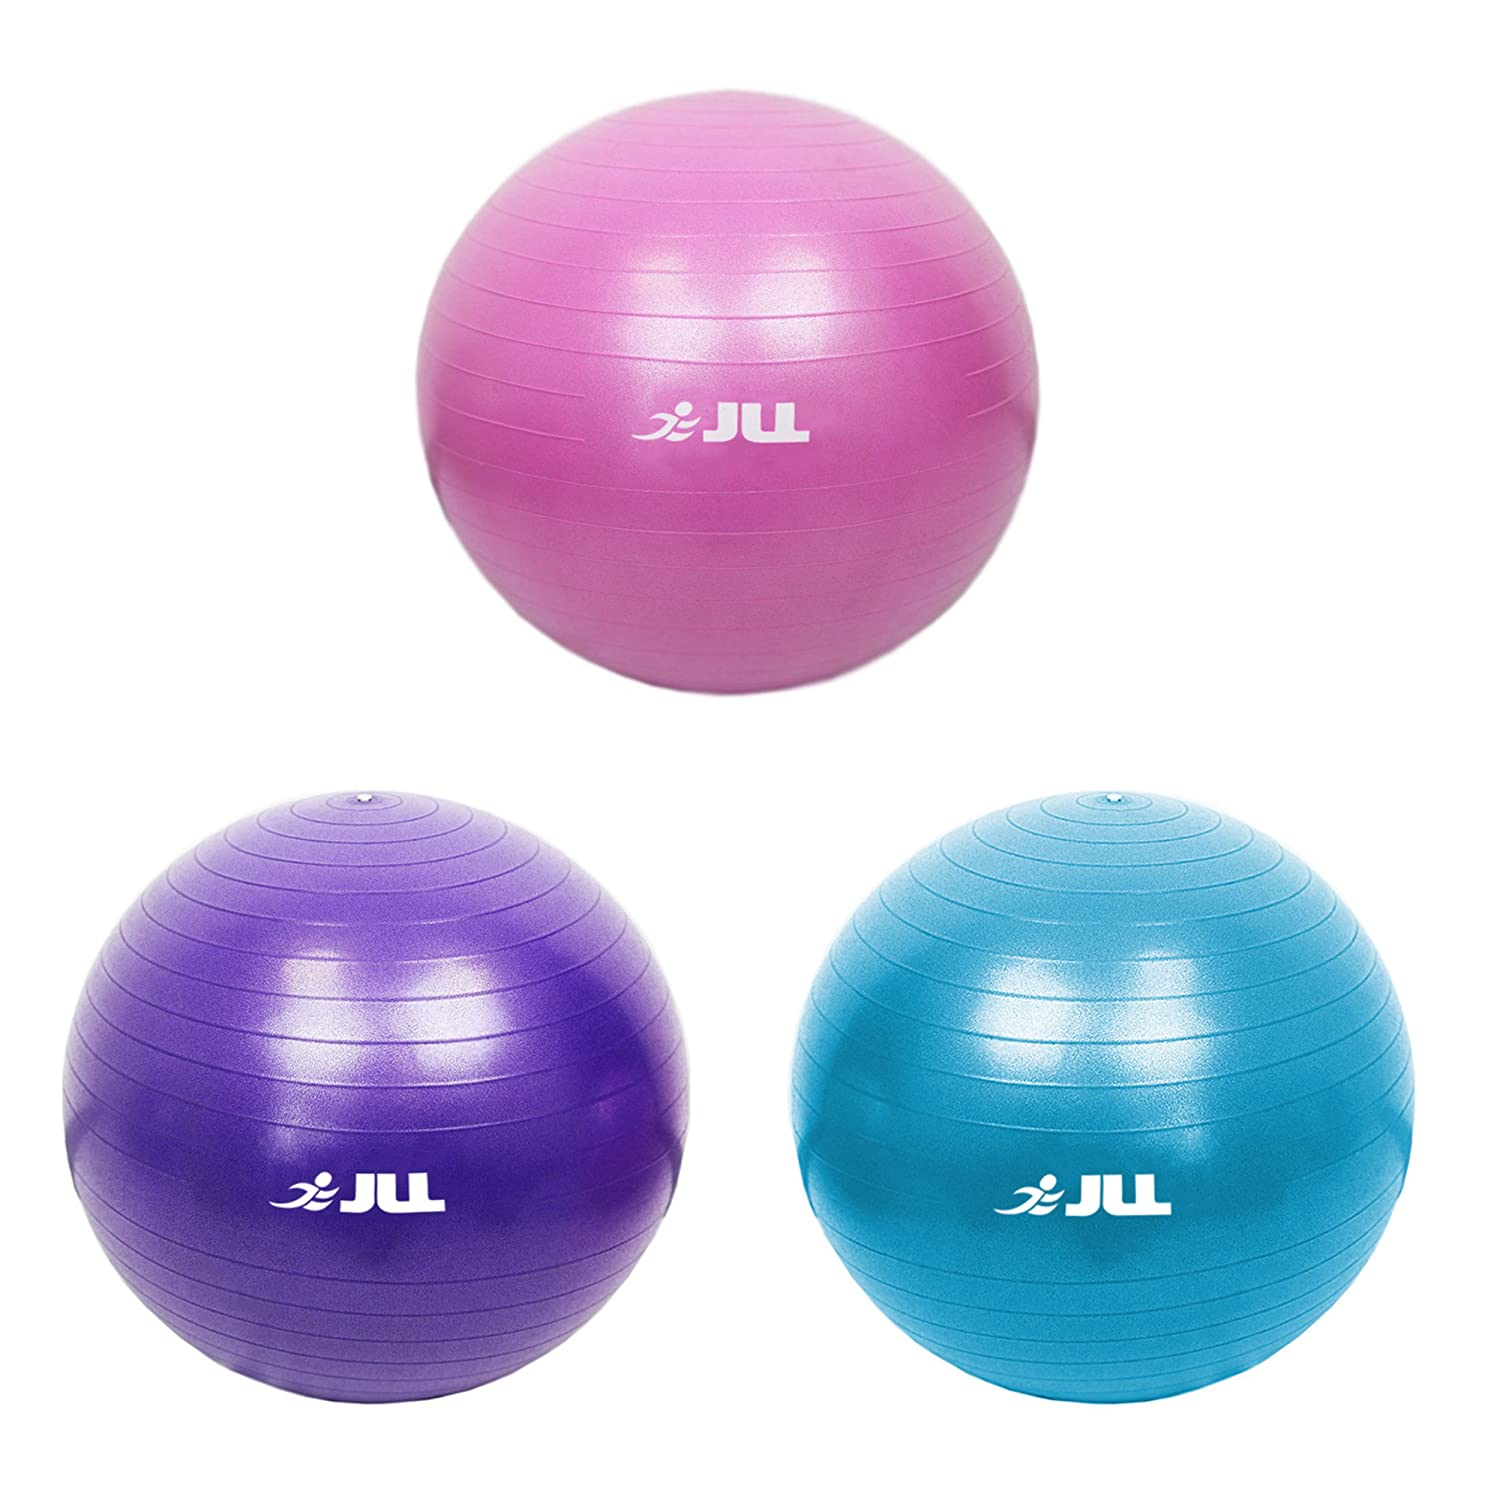 JLL® Anti-Burst Fitness Ball, 75cm diameter, Eco friendly with no smell, Foot Air Pump included, Boxed product Boxed product (Blue)